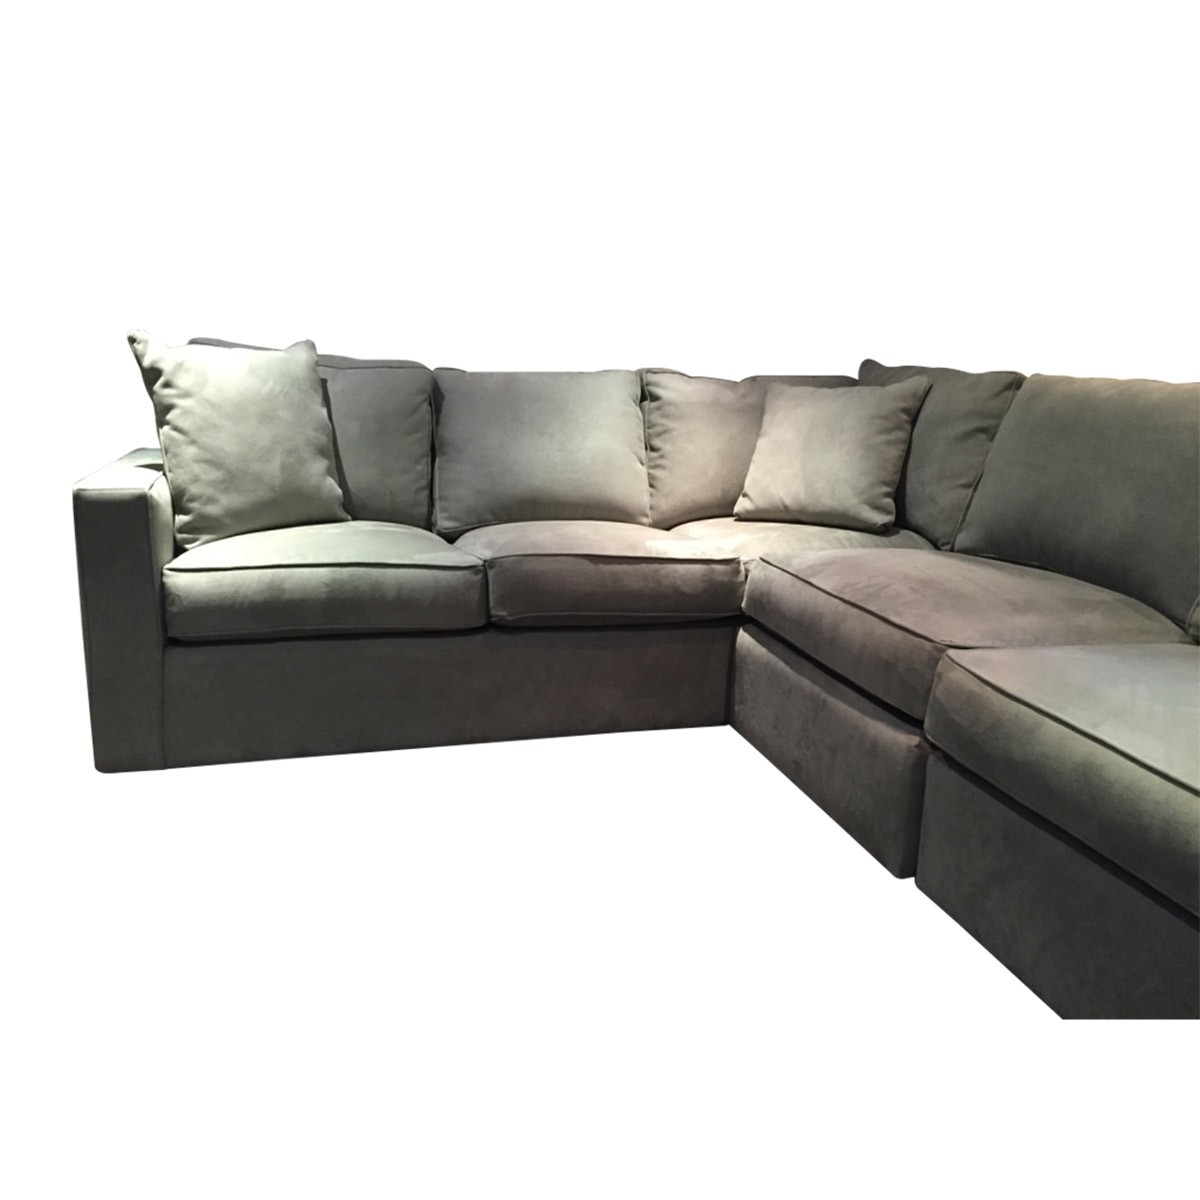 Sectional Sleeper Sofa | Cheap Sectional Sofas | Sleeper Sectional Sofa For Small Spaces